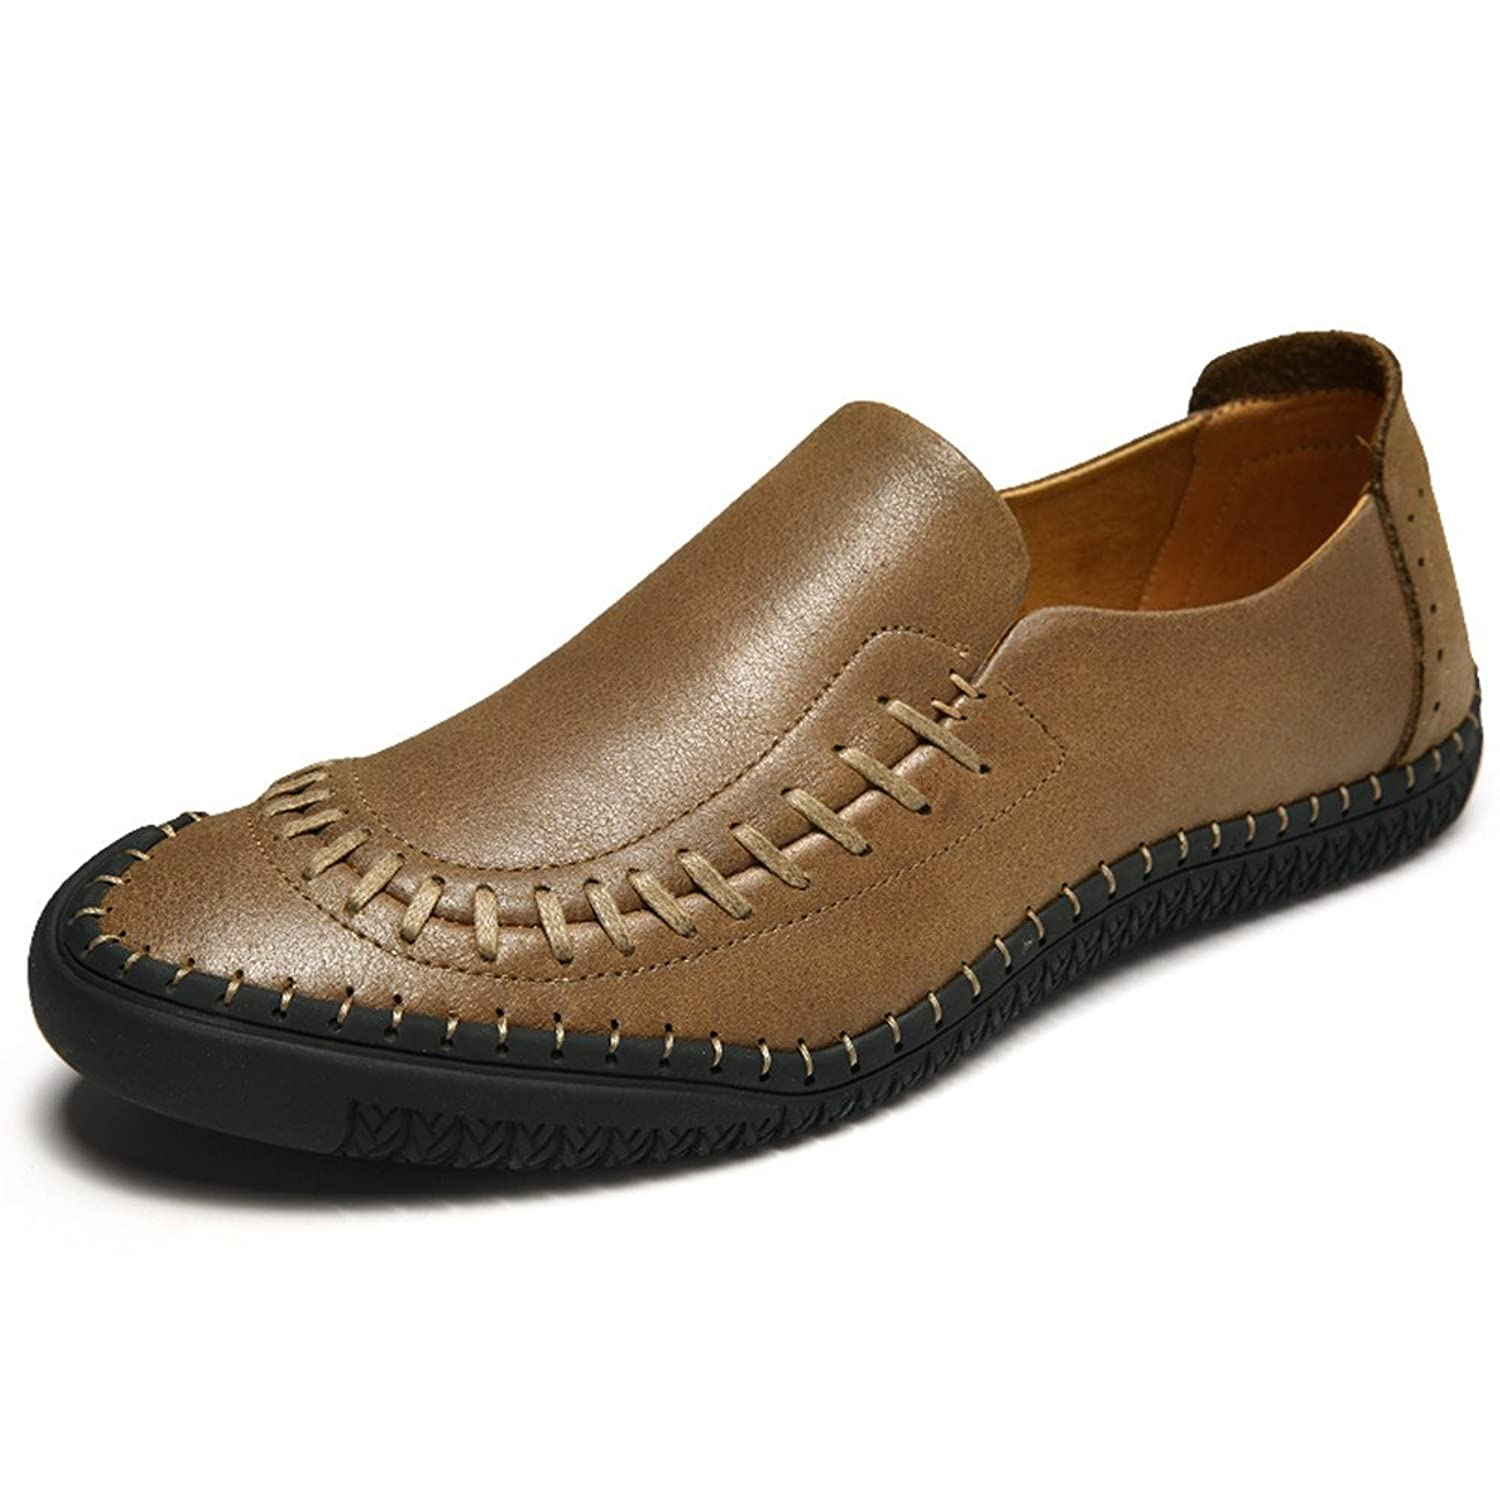 Men's Casual Handmade Slip-On Loafer Shoes Real Leather Sneaker